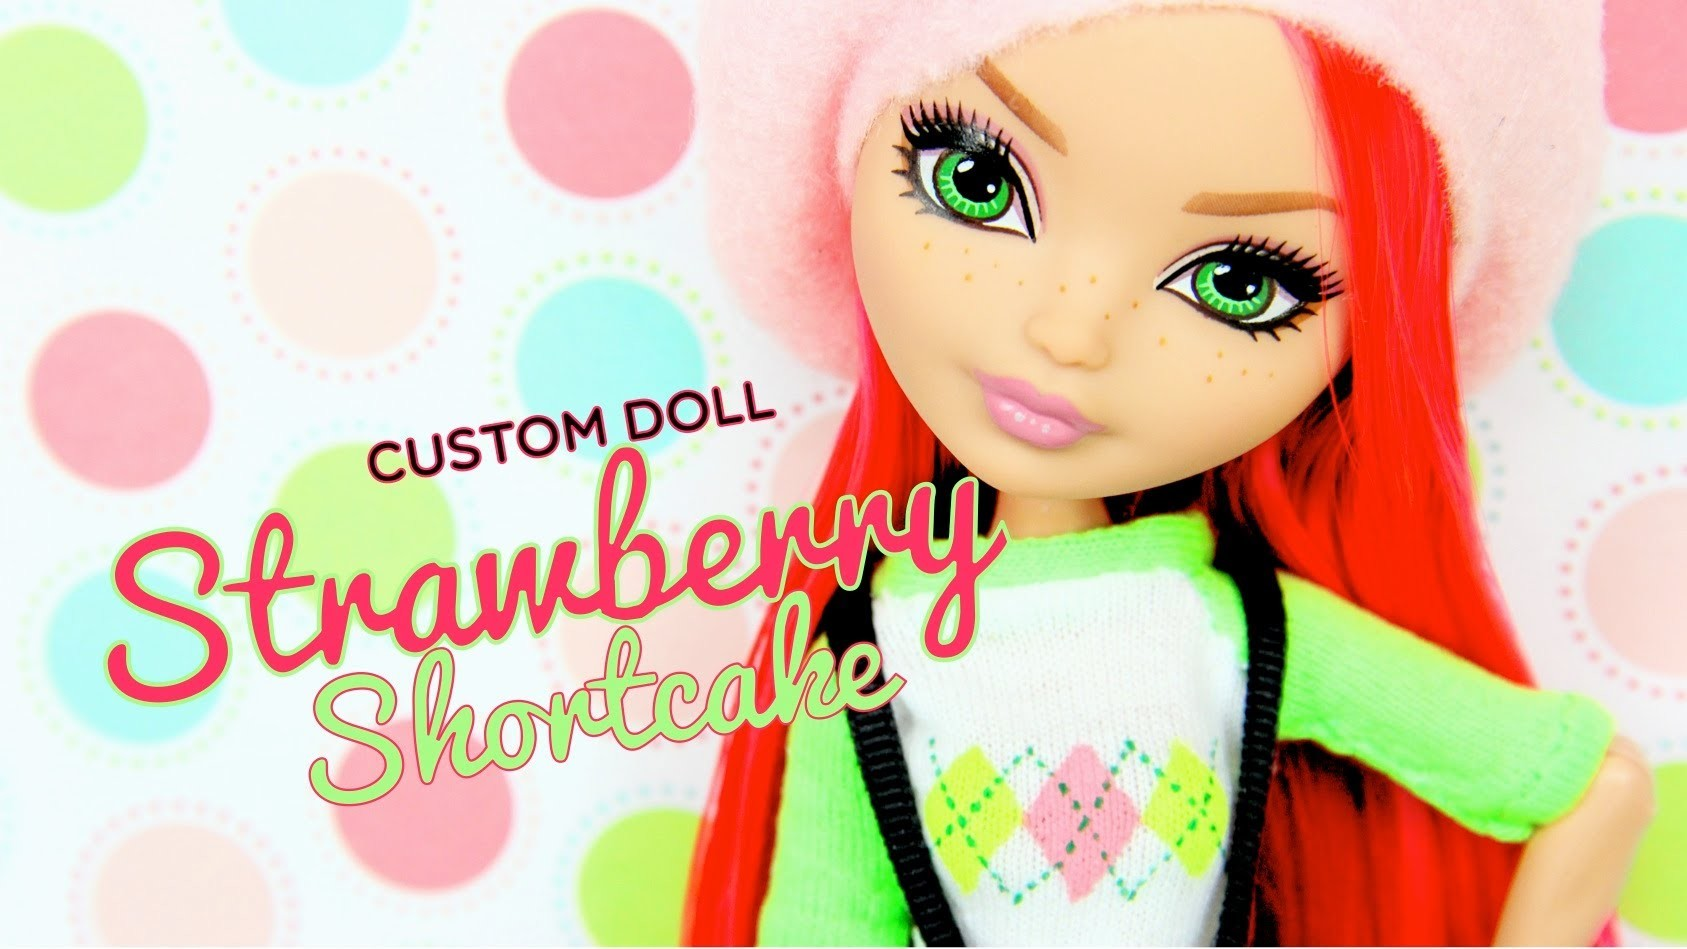 Custom Doll: Ever After High Strawberry Shortcake - Doll Crafts